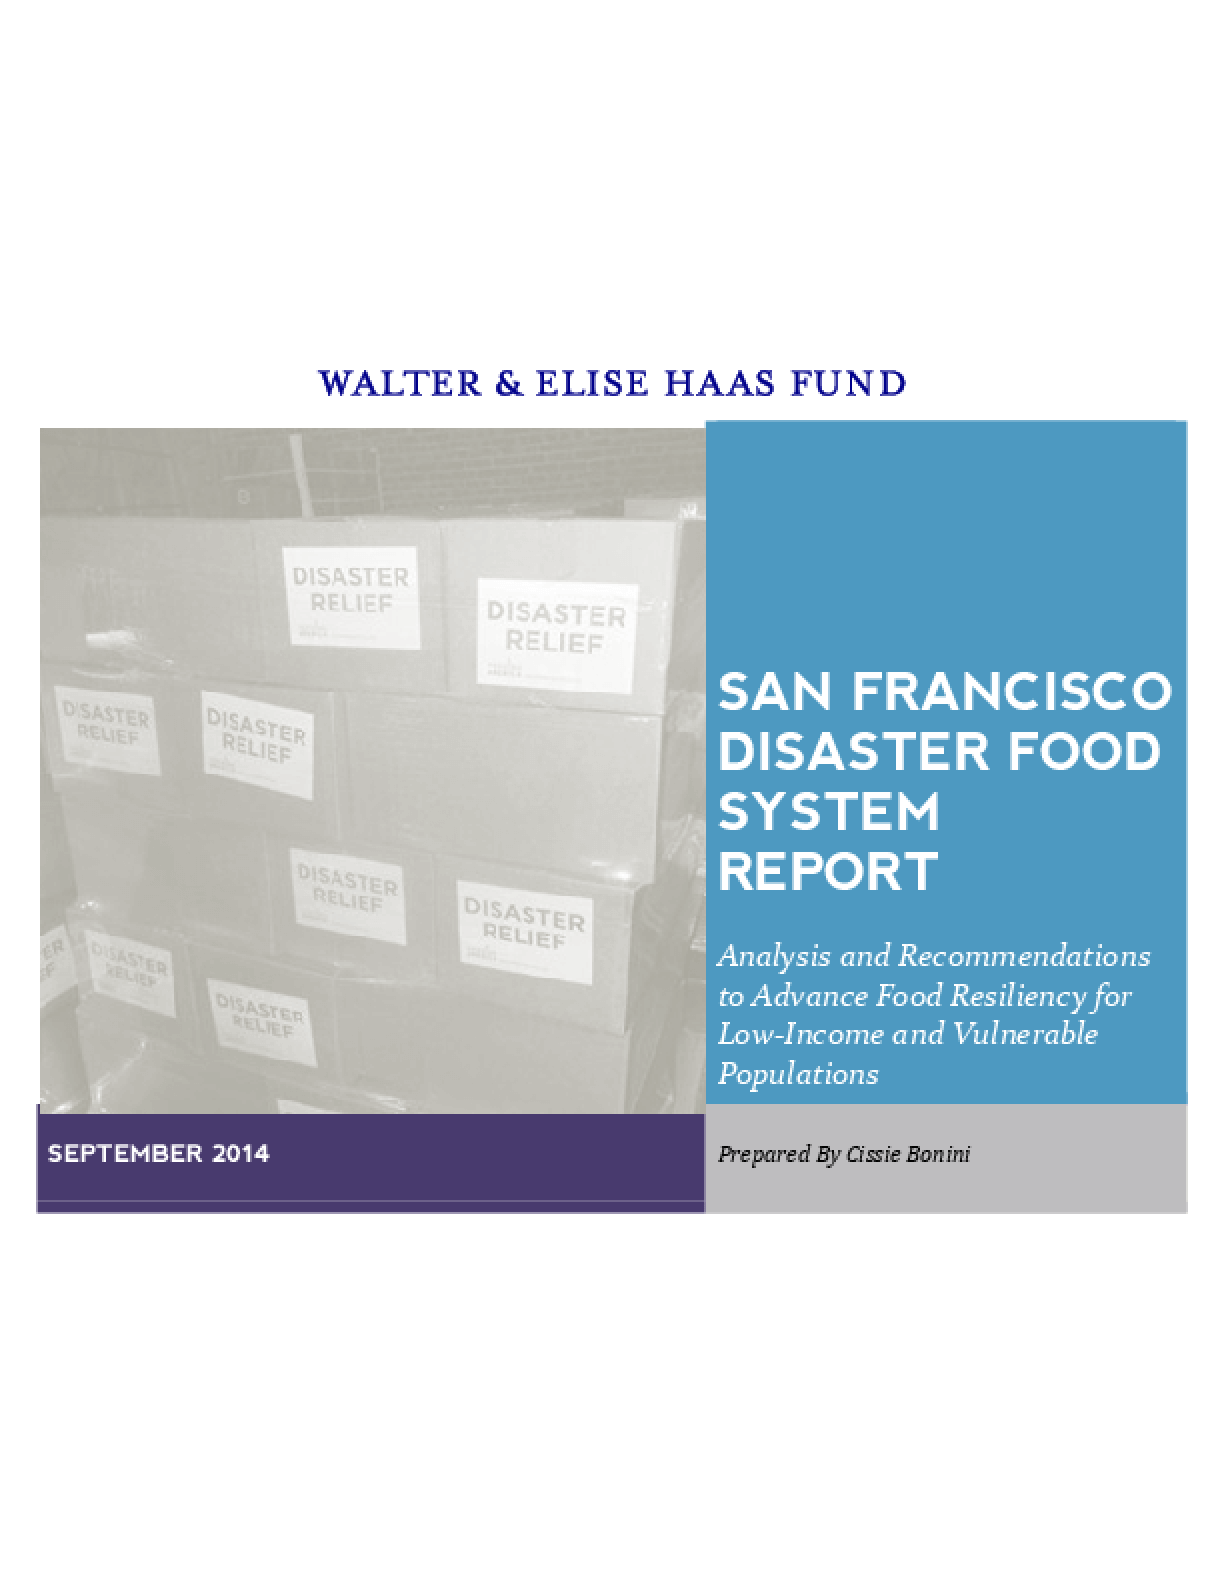 San Francisco Disaster Food System Report